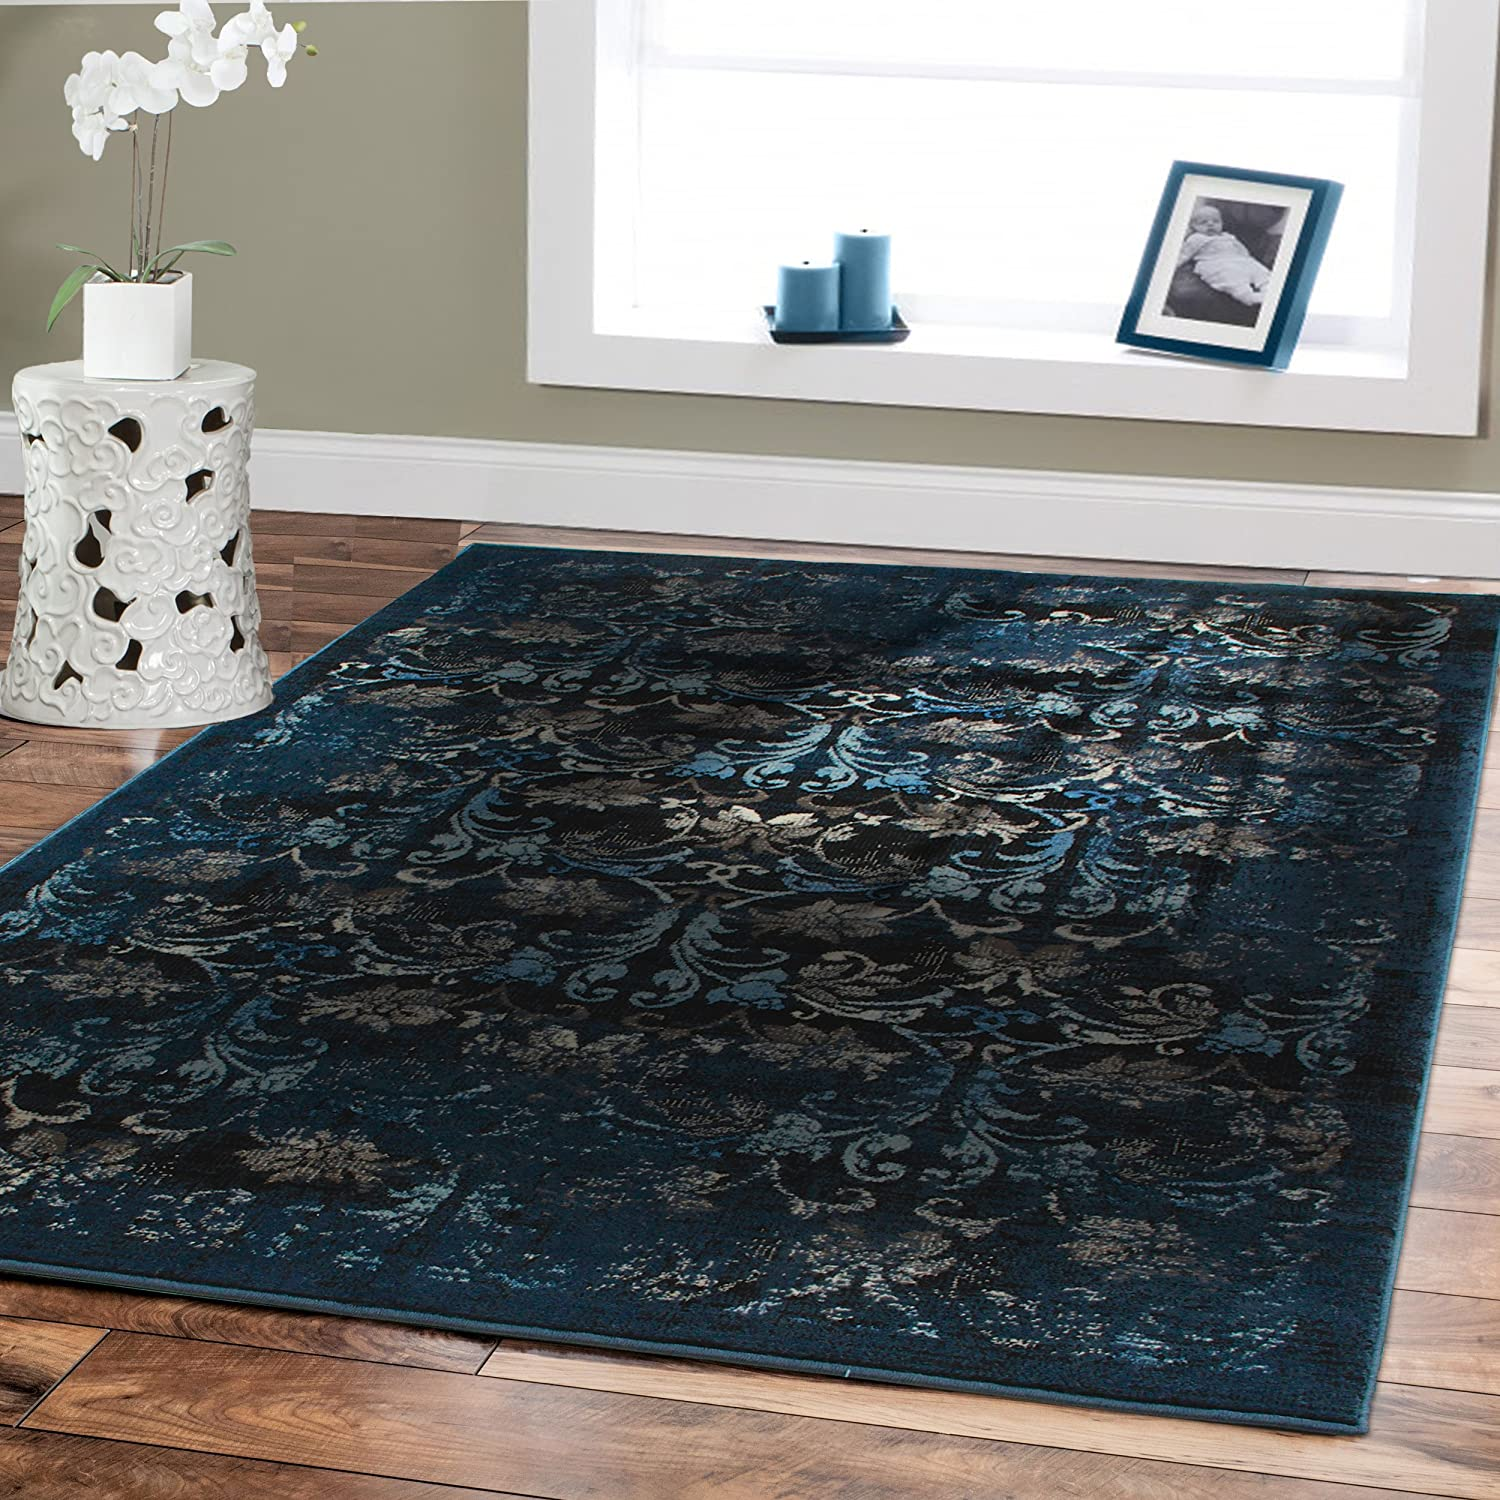 navy blue rugs fullxfull rectangle il zoom luxurious nonslip rug area rich listing shaggy